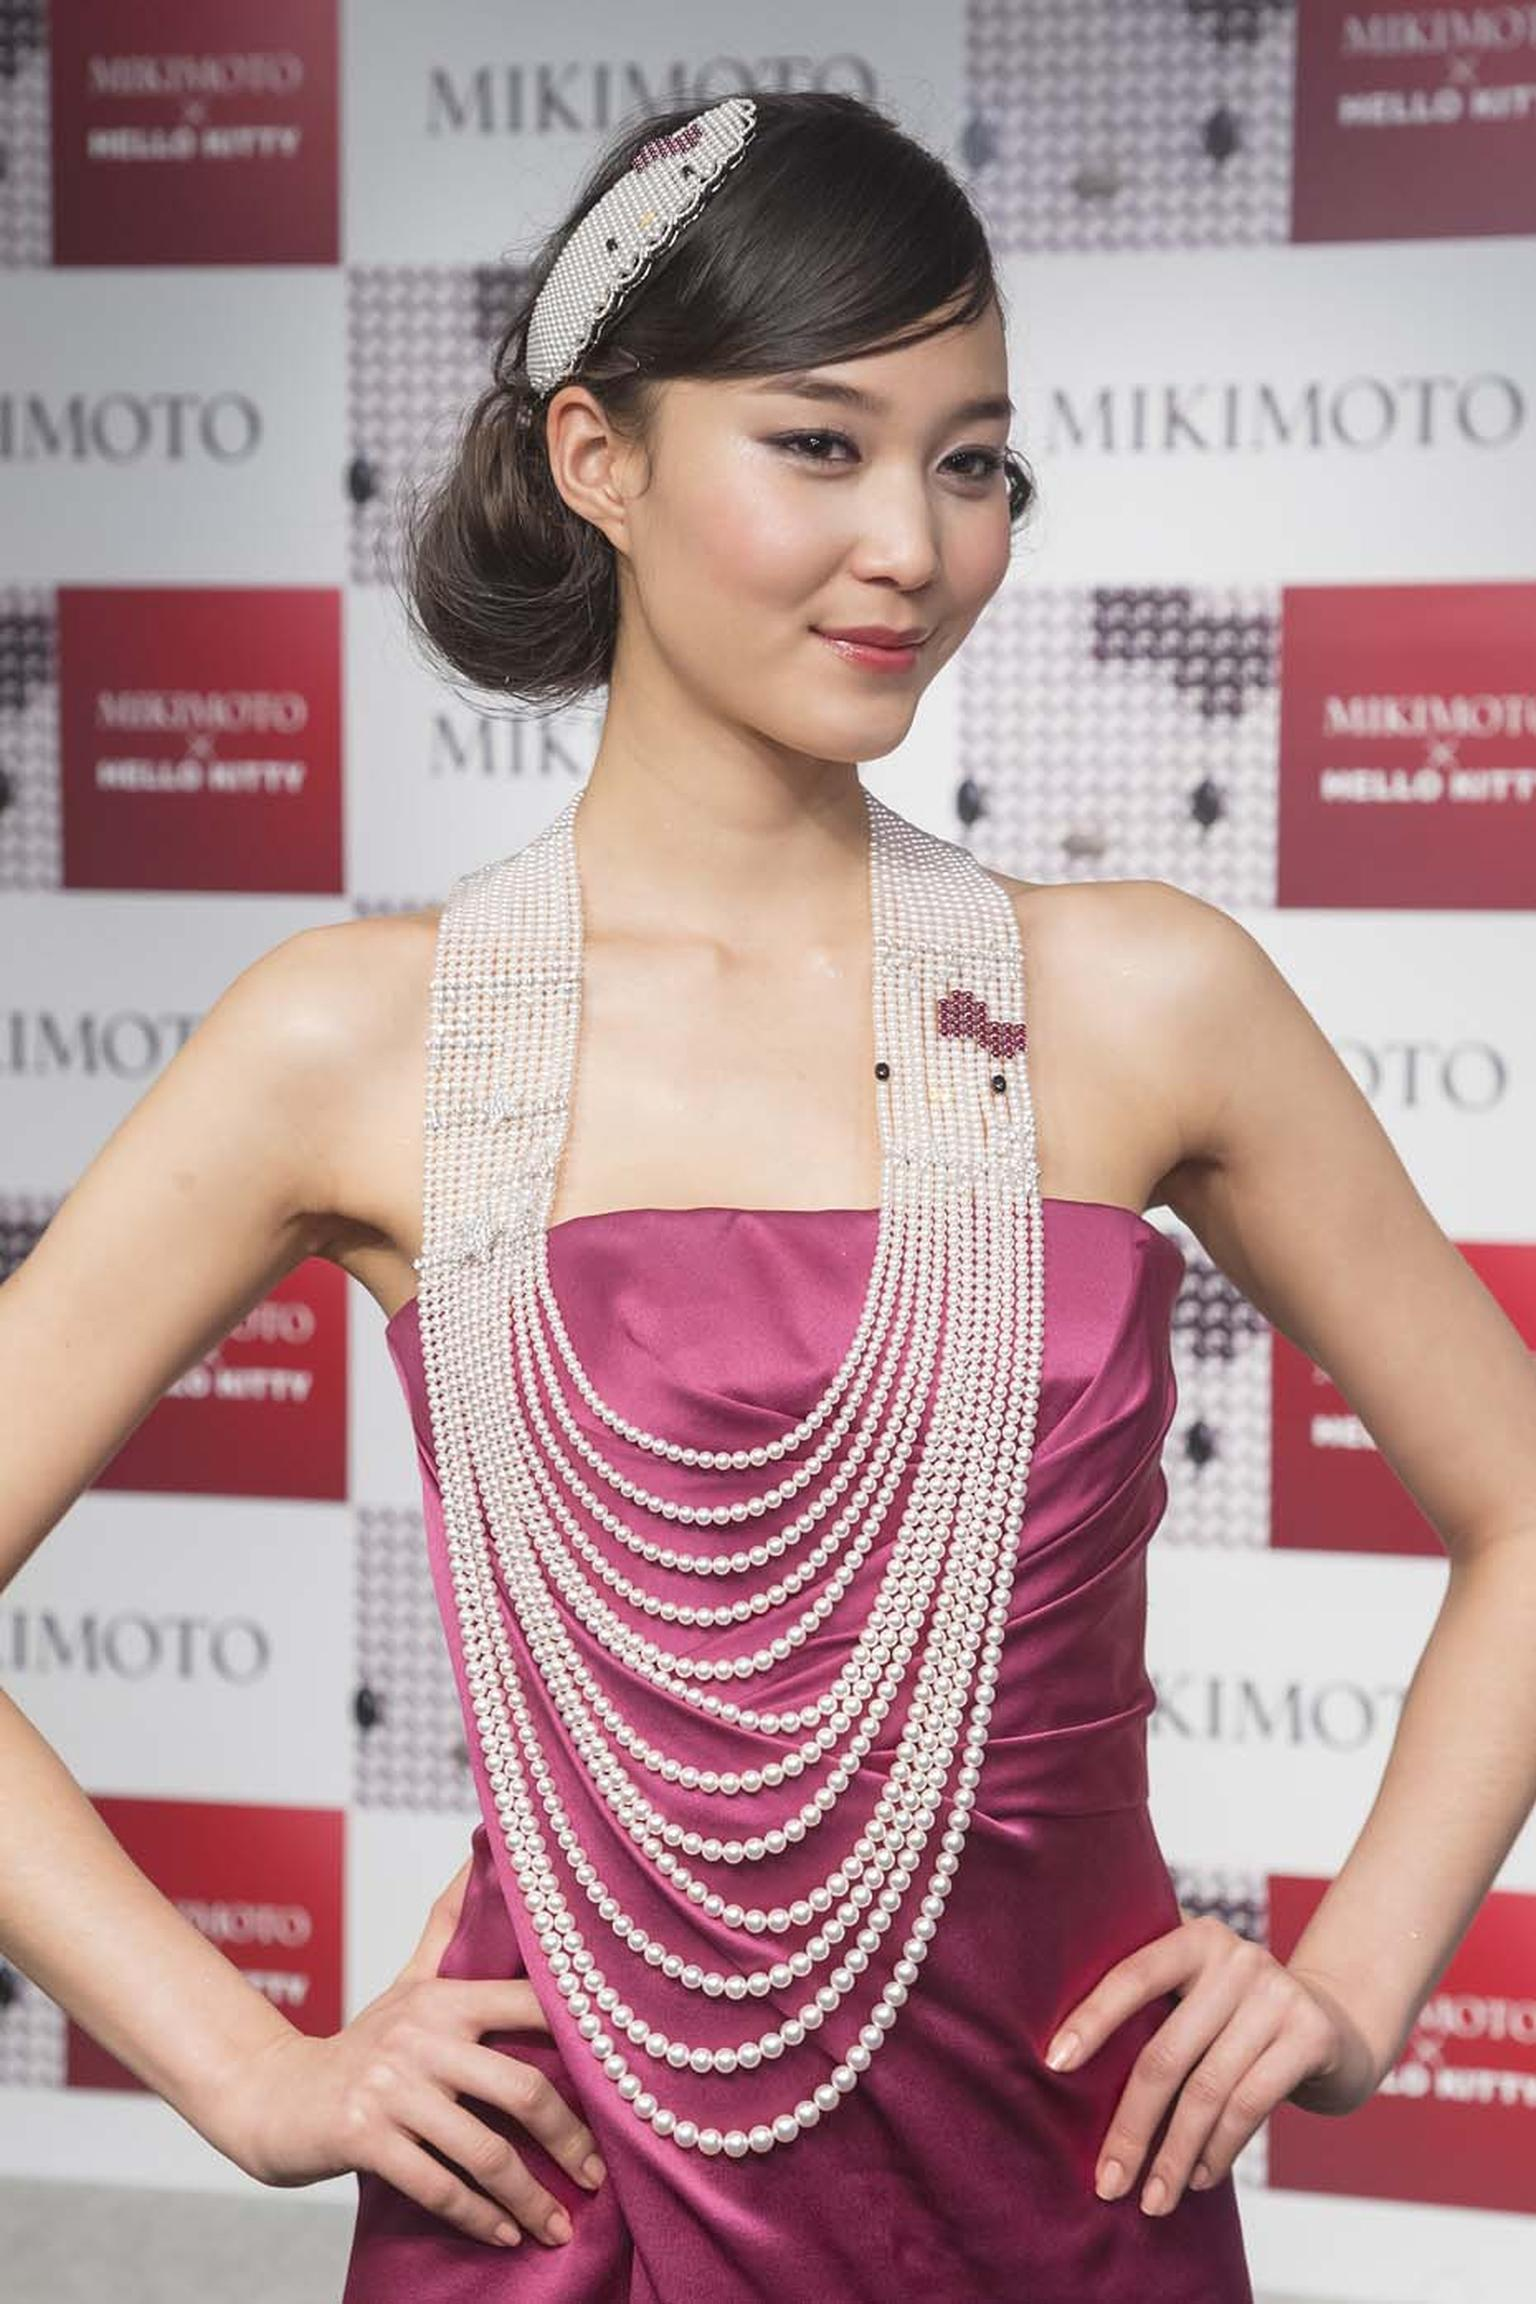 Mikimoto x Hello Kitty pearl necklace and head piece